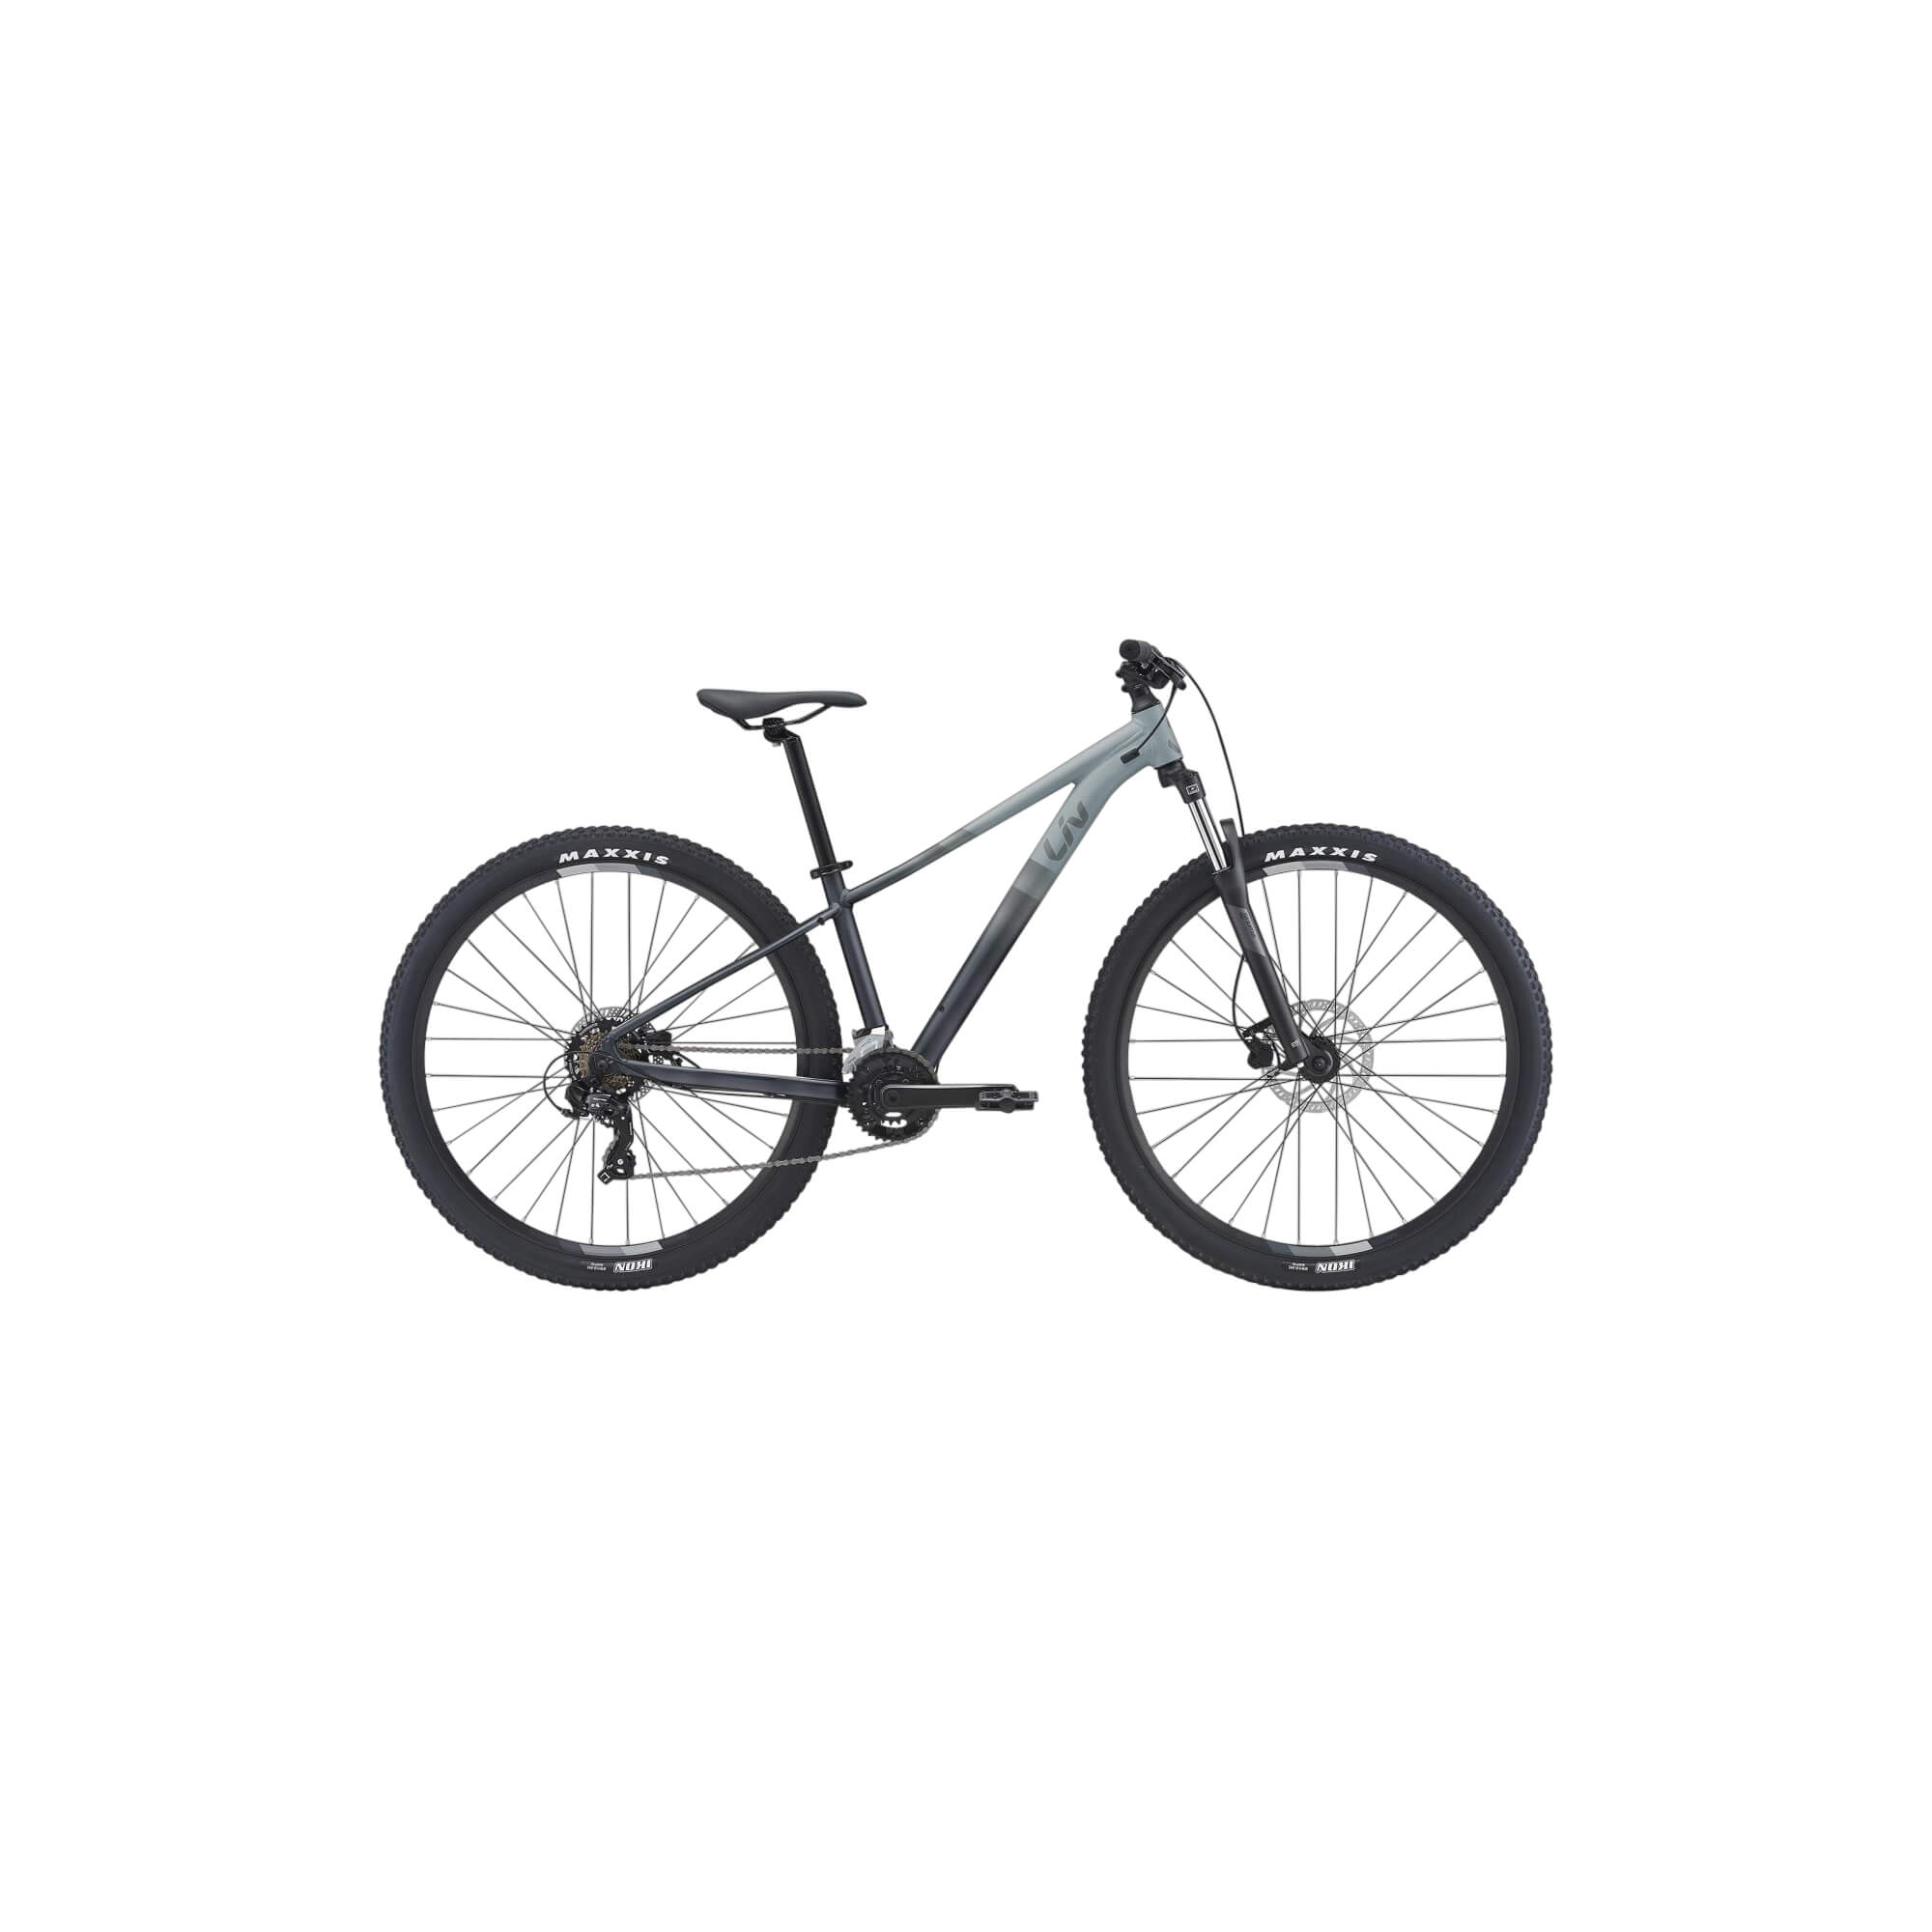 MTB Liv Giant Tempt 3 27.5 imagine